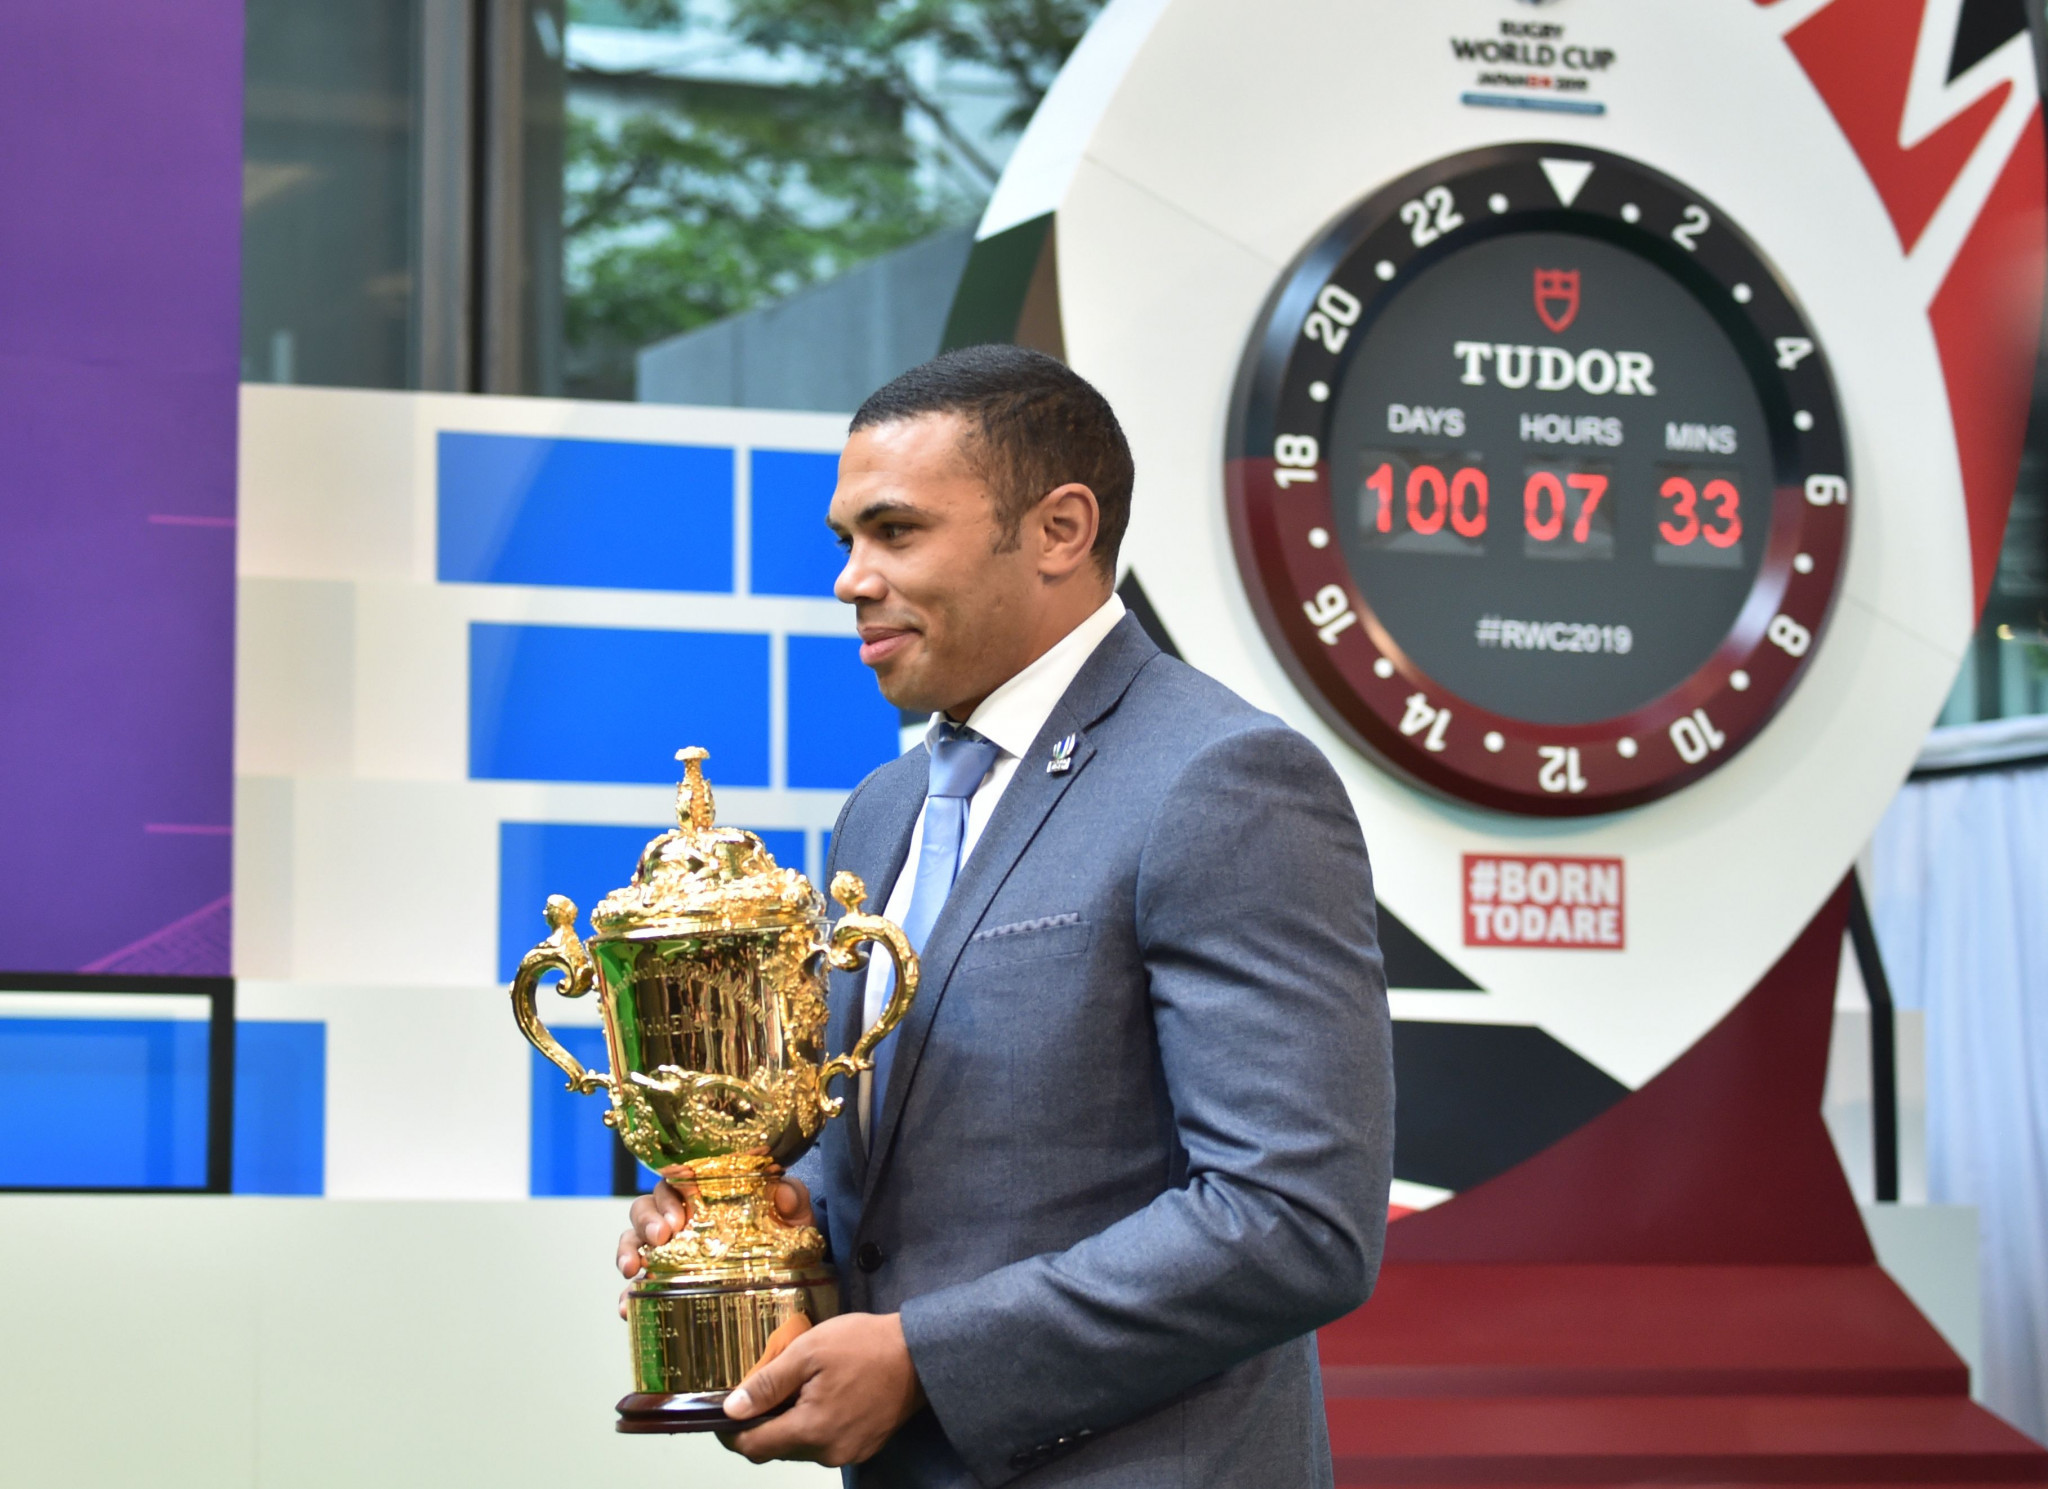 The Webb Ellis Cup has embarked on a 100-day tour of the country and will visit all 12 host cities ©Getty Images